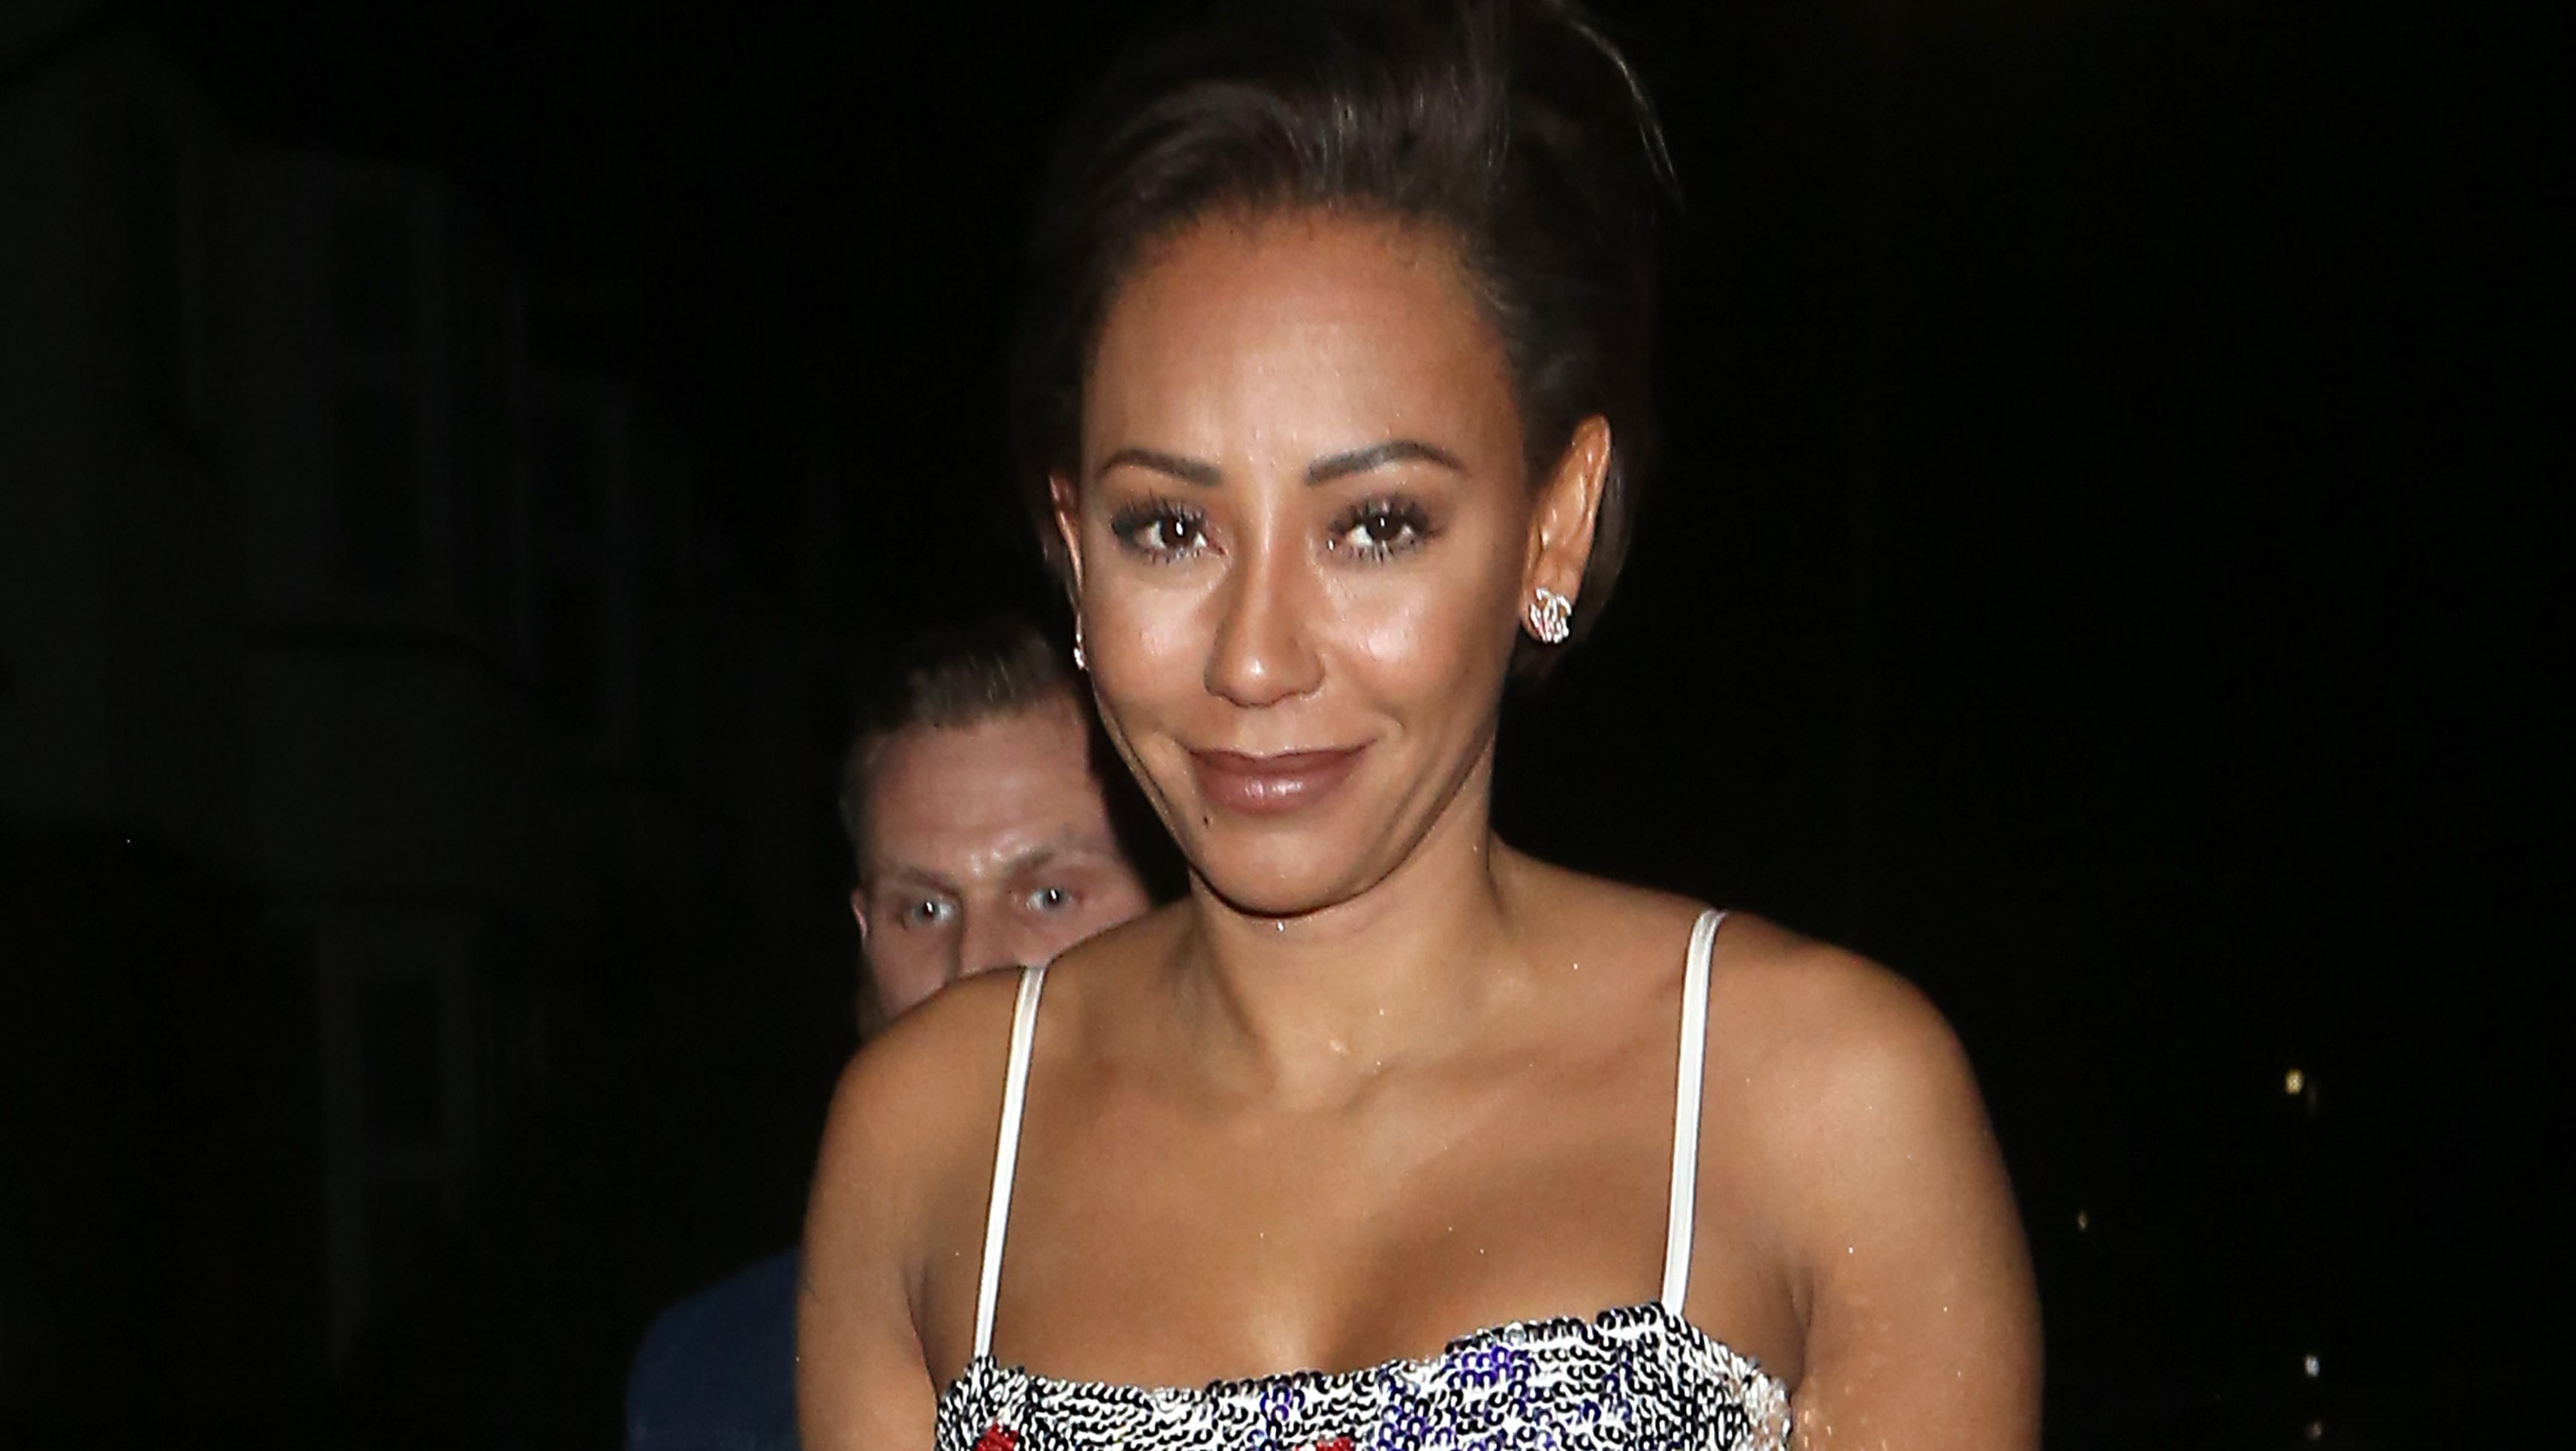 Mel B rushed to hospital after 'going blind'